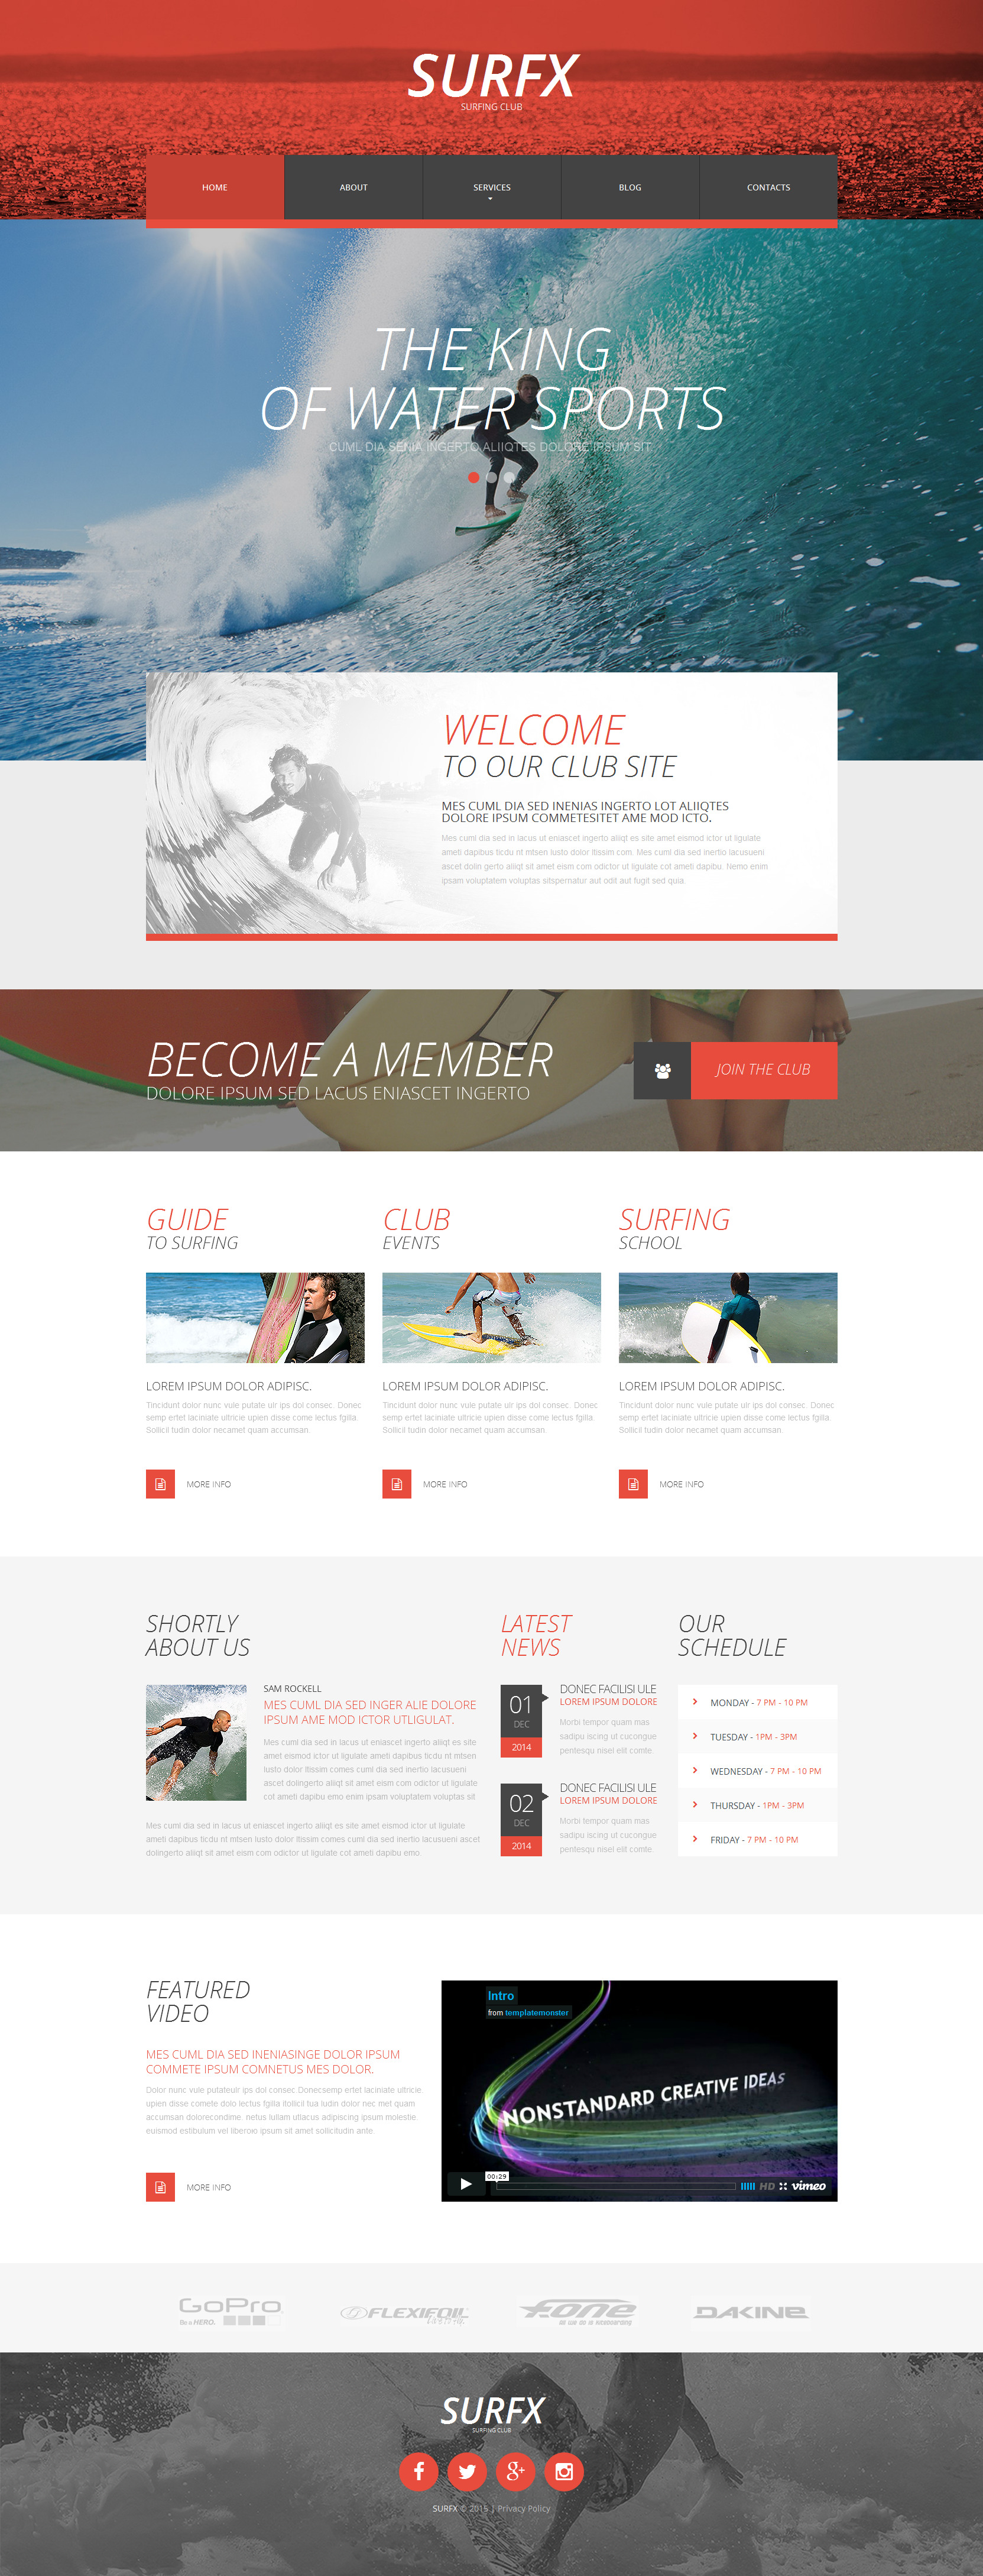 Surfing Club Website Template